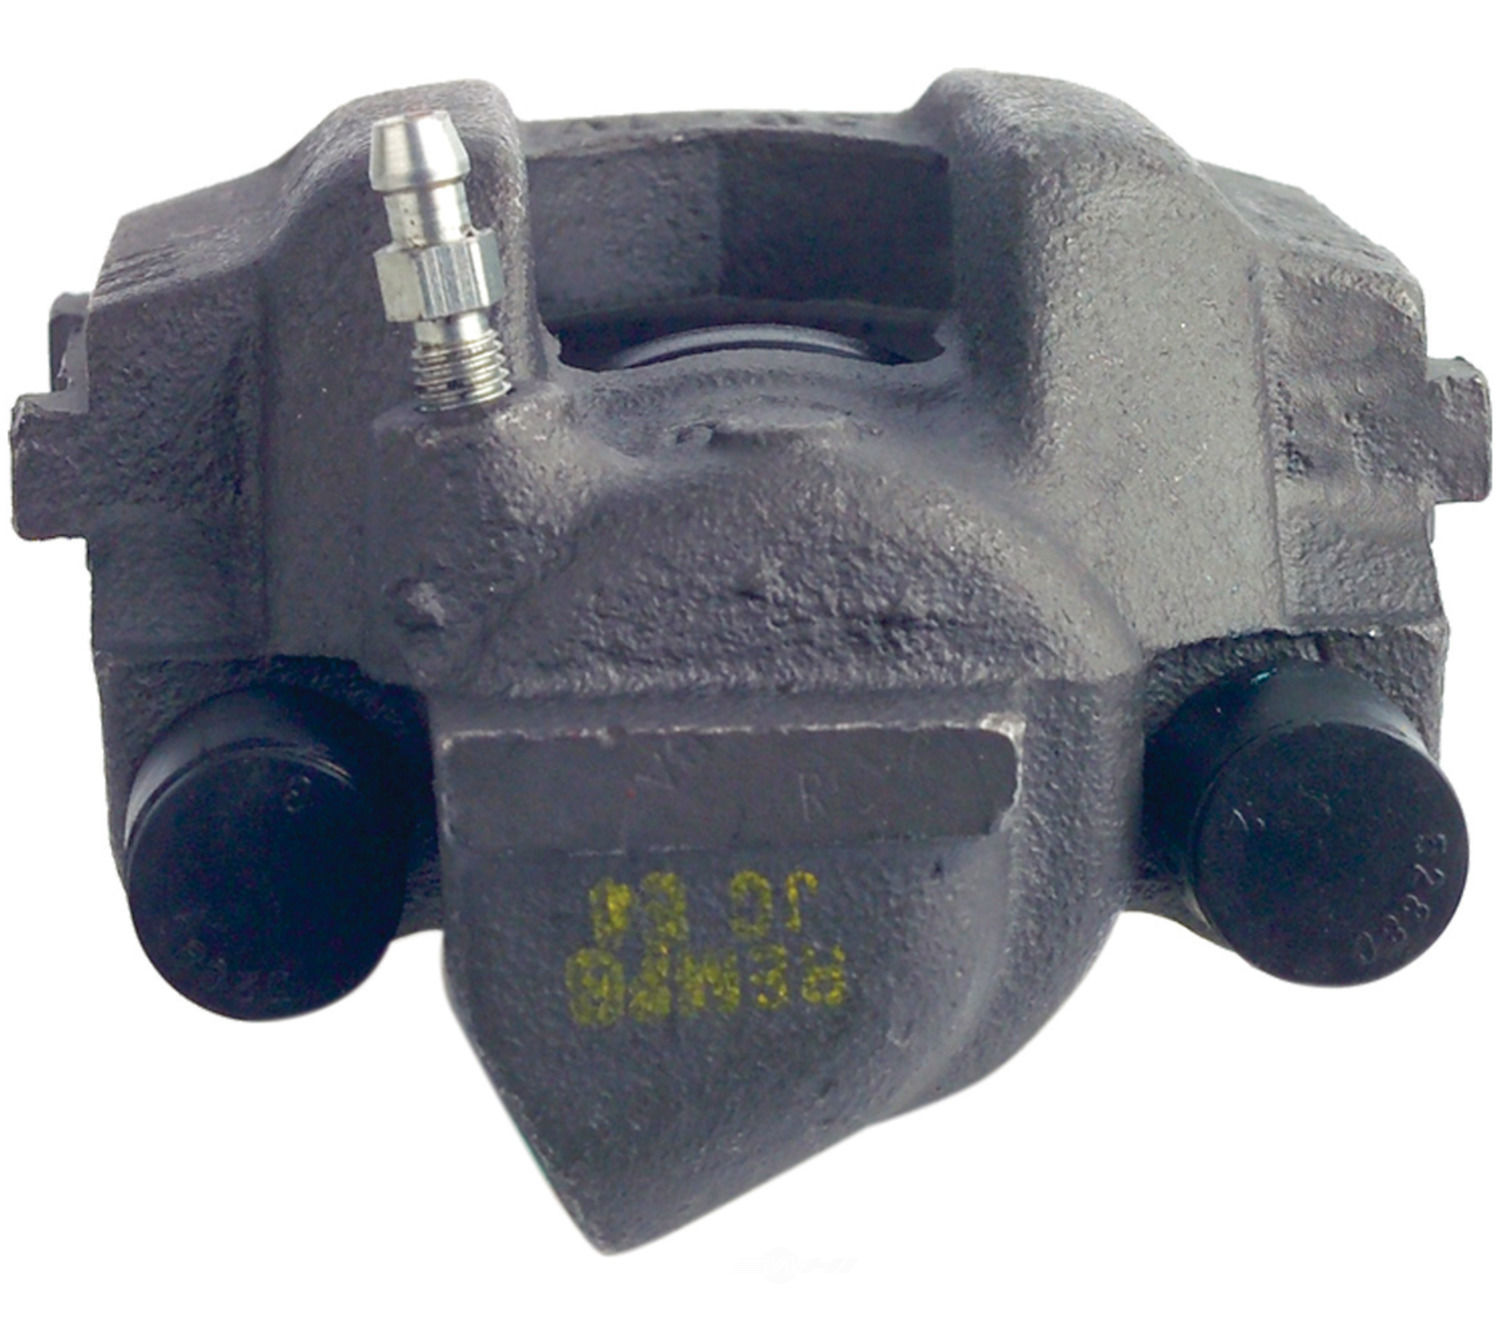 CARDONE/A-1 CARDONE - Reman Friction Choice Caliper (Rear Right) - A1C 19-1385